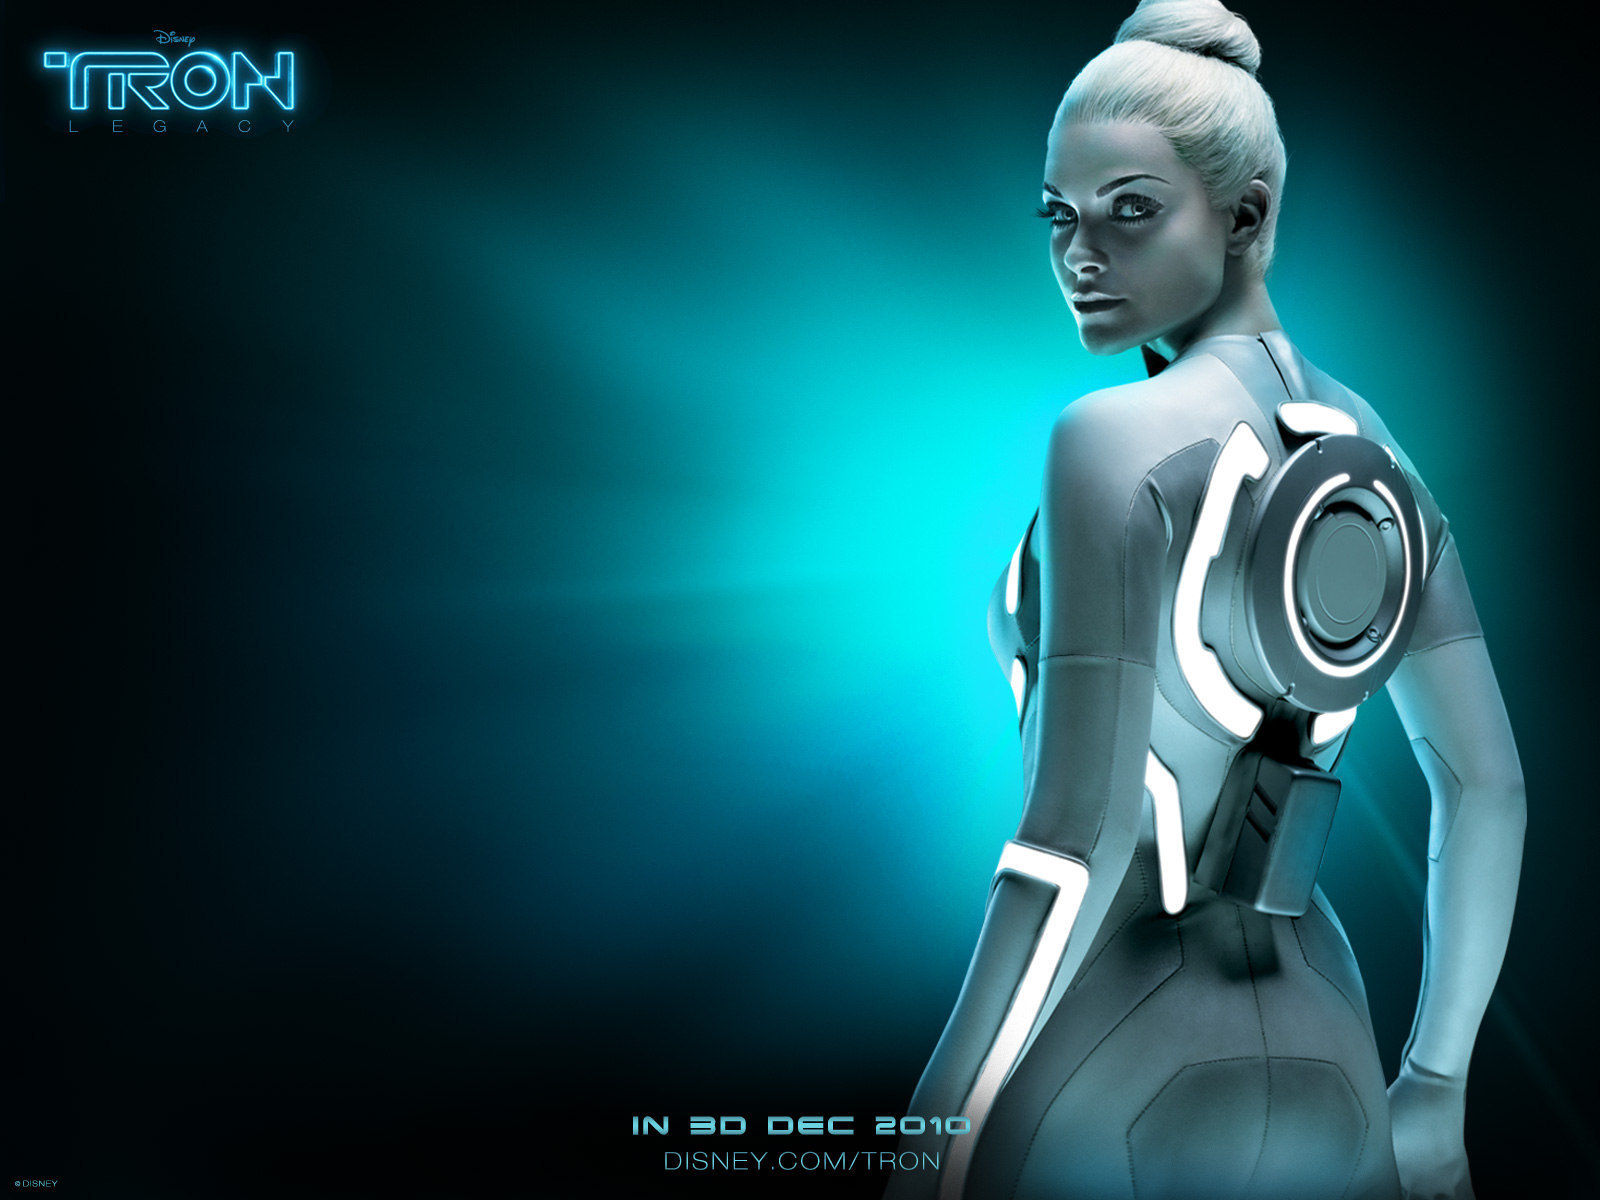 upcoming movies images tron legacy 2010 hd wallpaper